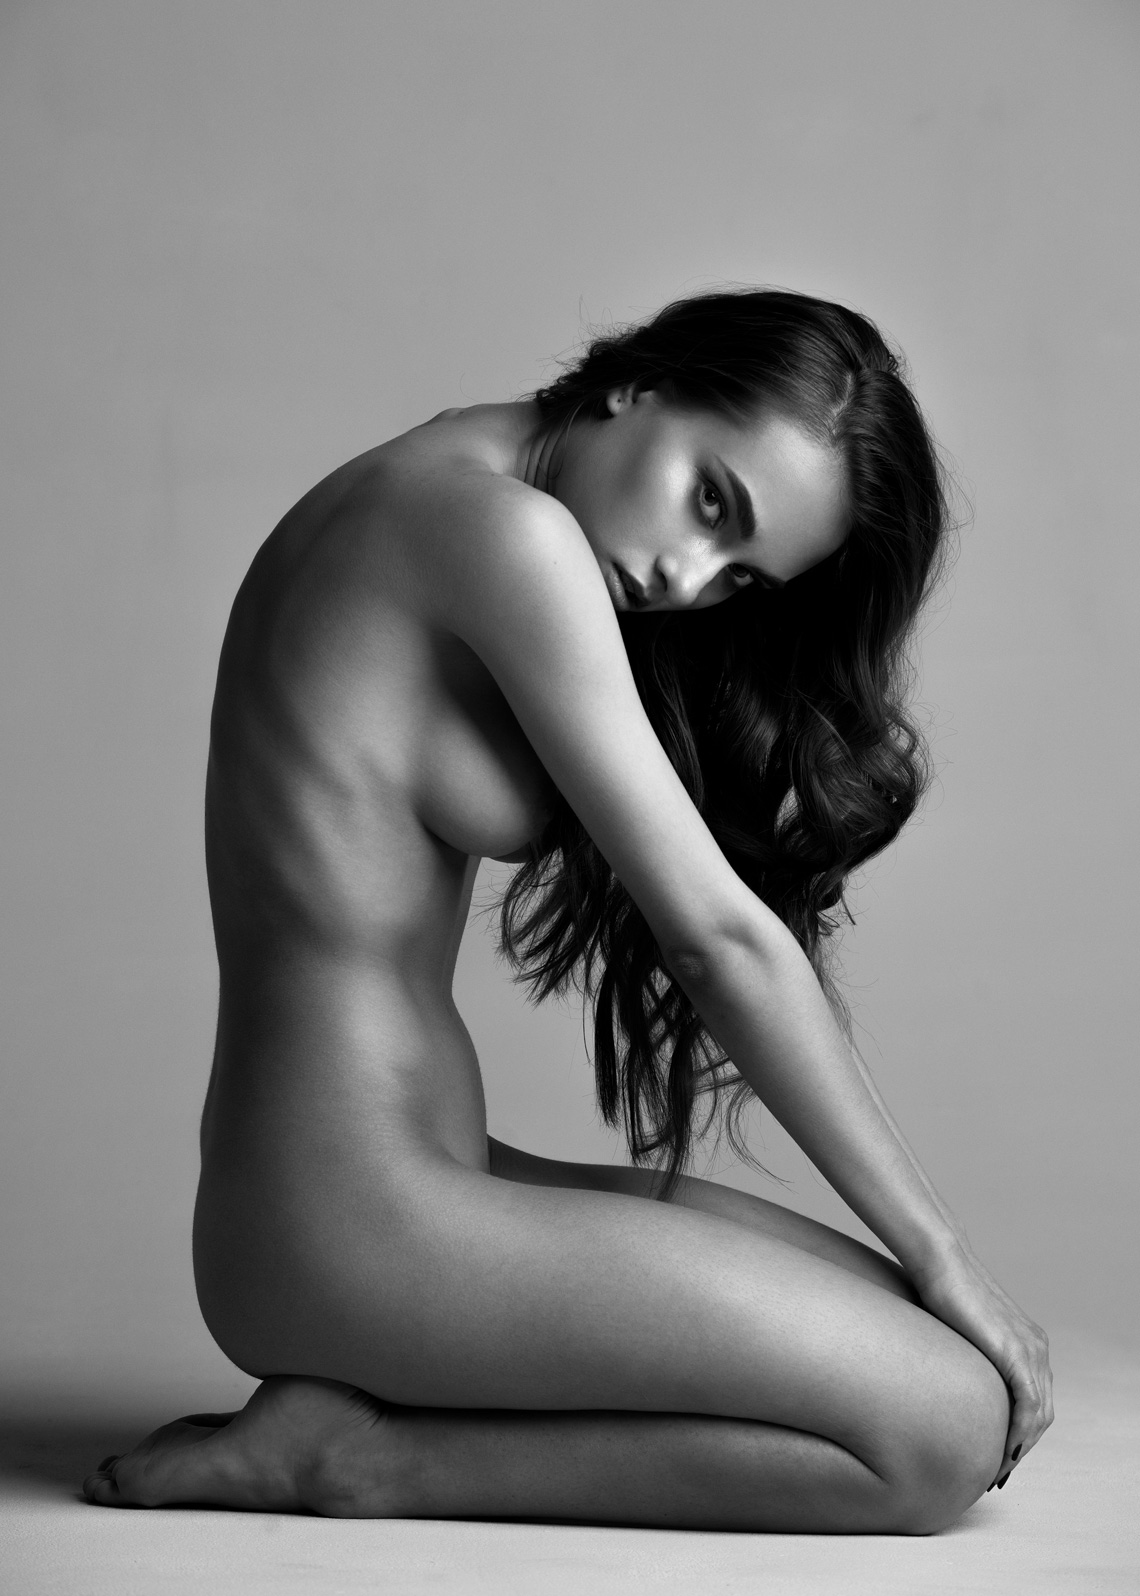 Emily ratajkowski naked treats magazine issue 3 by steve shaw 1 2012 4